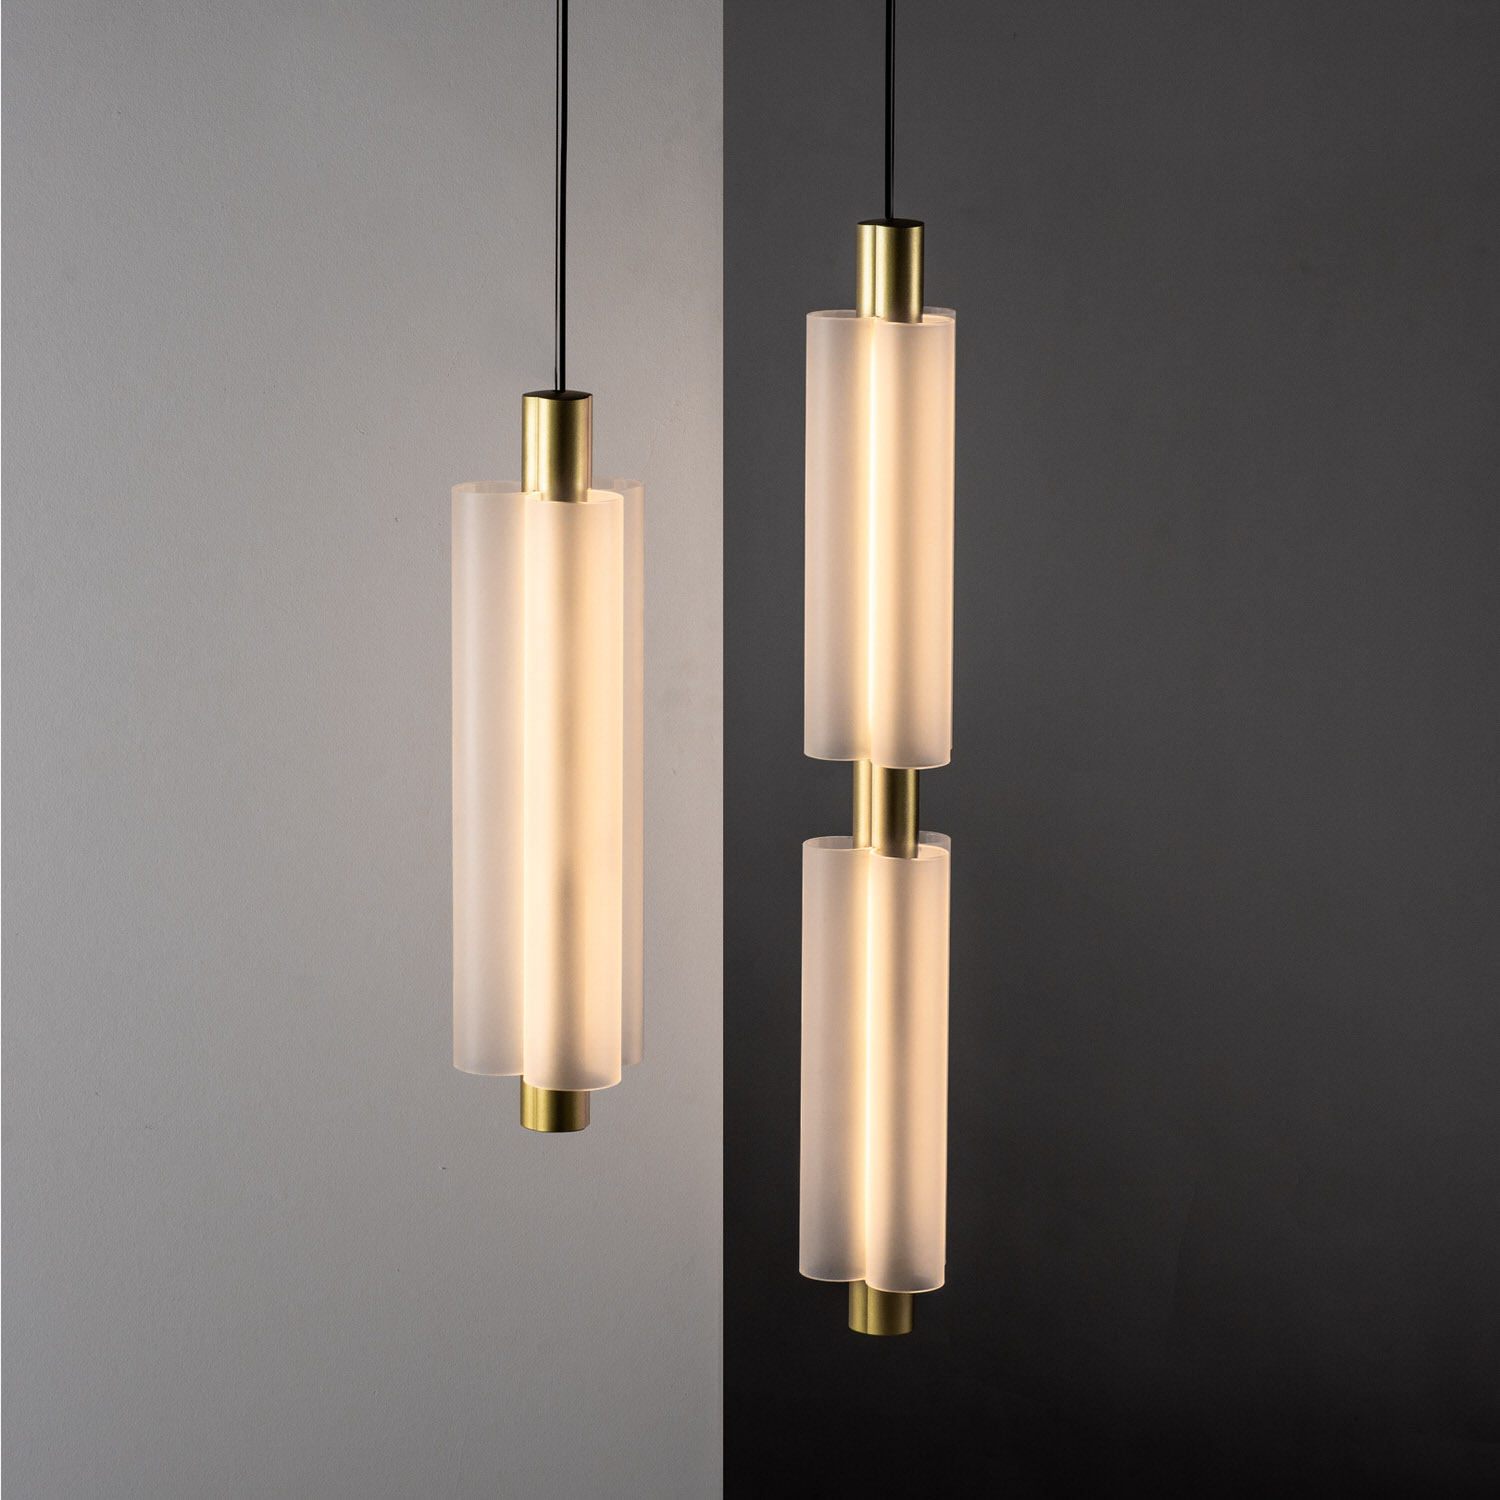 Metropol Pendants Sebastian Herkner For Rakumba, Lighting Design | Yellowtrace